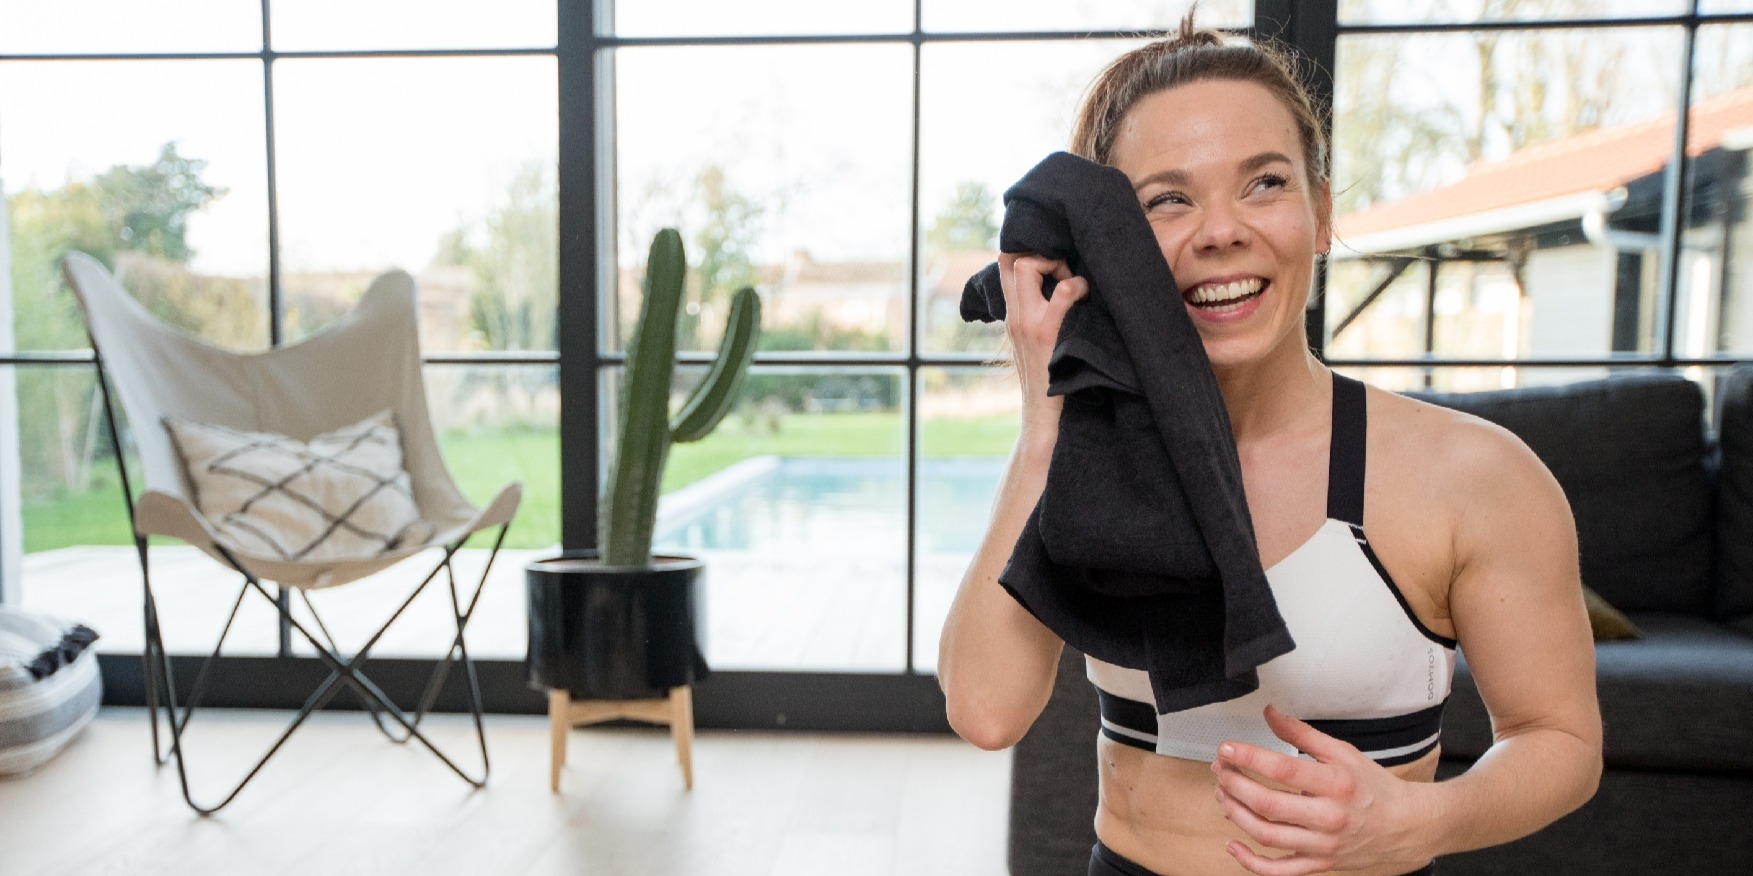 Utilise Your Household Items For Home Workout